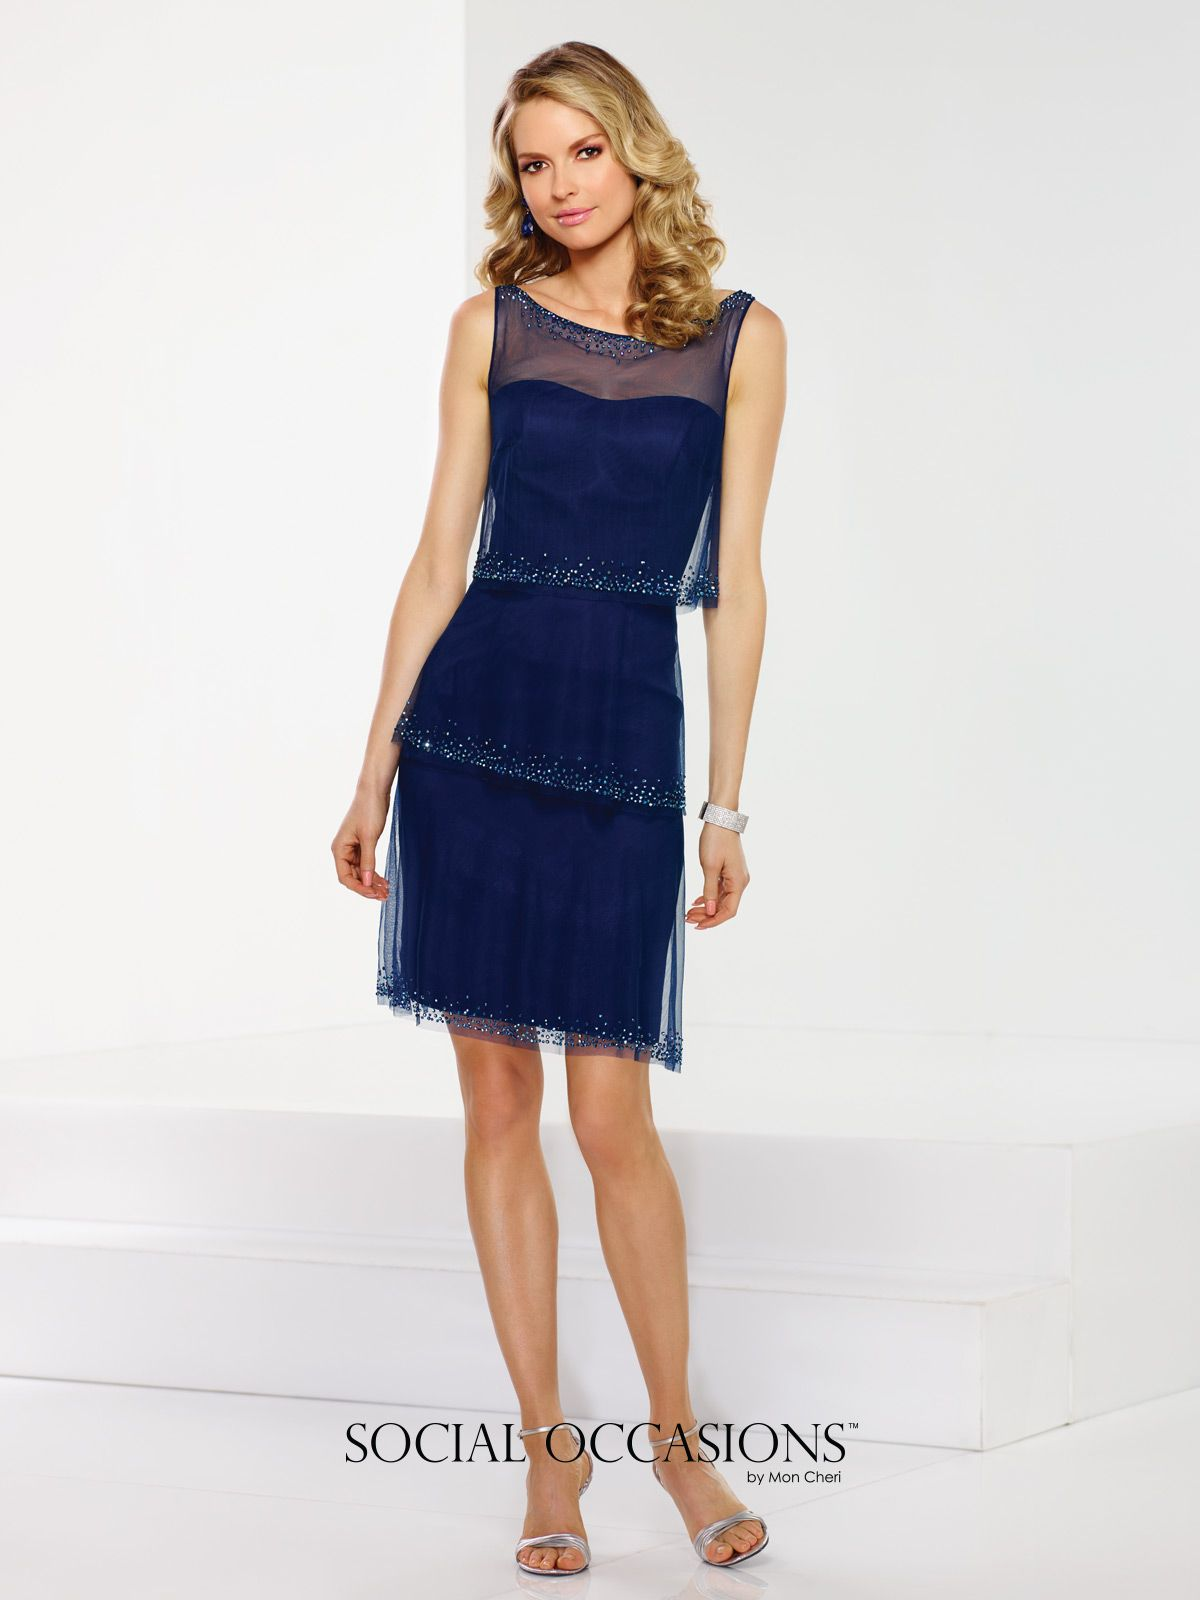 9e95b64d6a5e Social Occasions by Mon Cheri - 116847 - Sleeveless hand-beaded tulle  three-tiered above-the-knee A-line dress